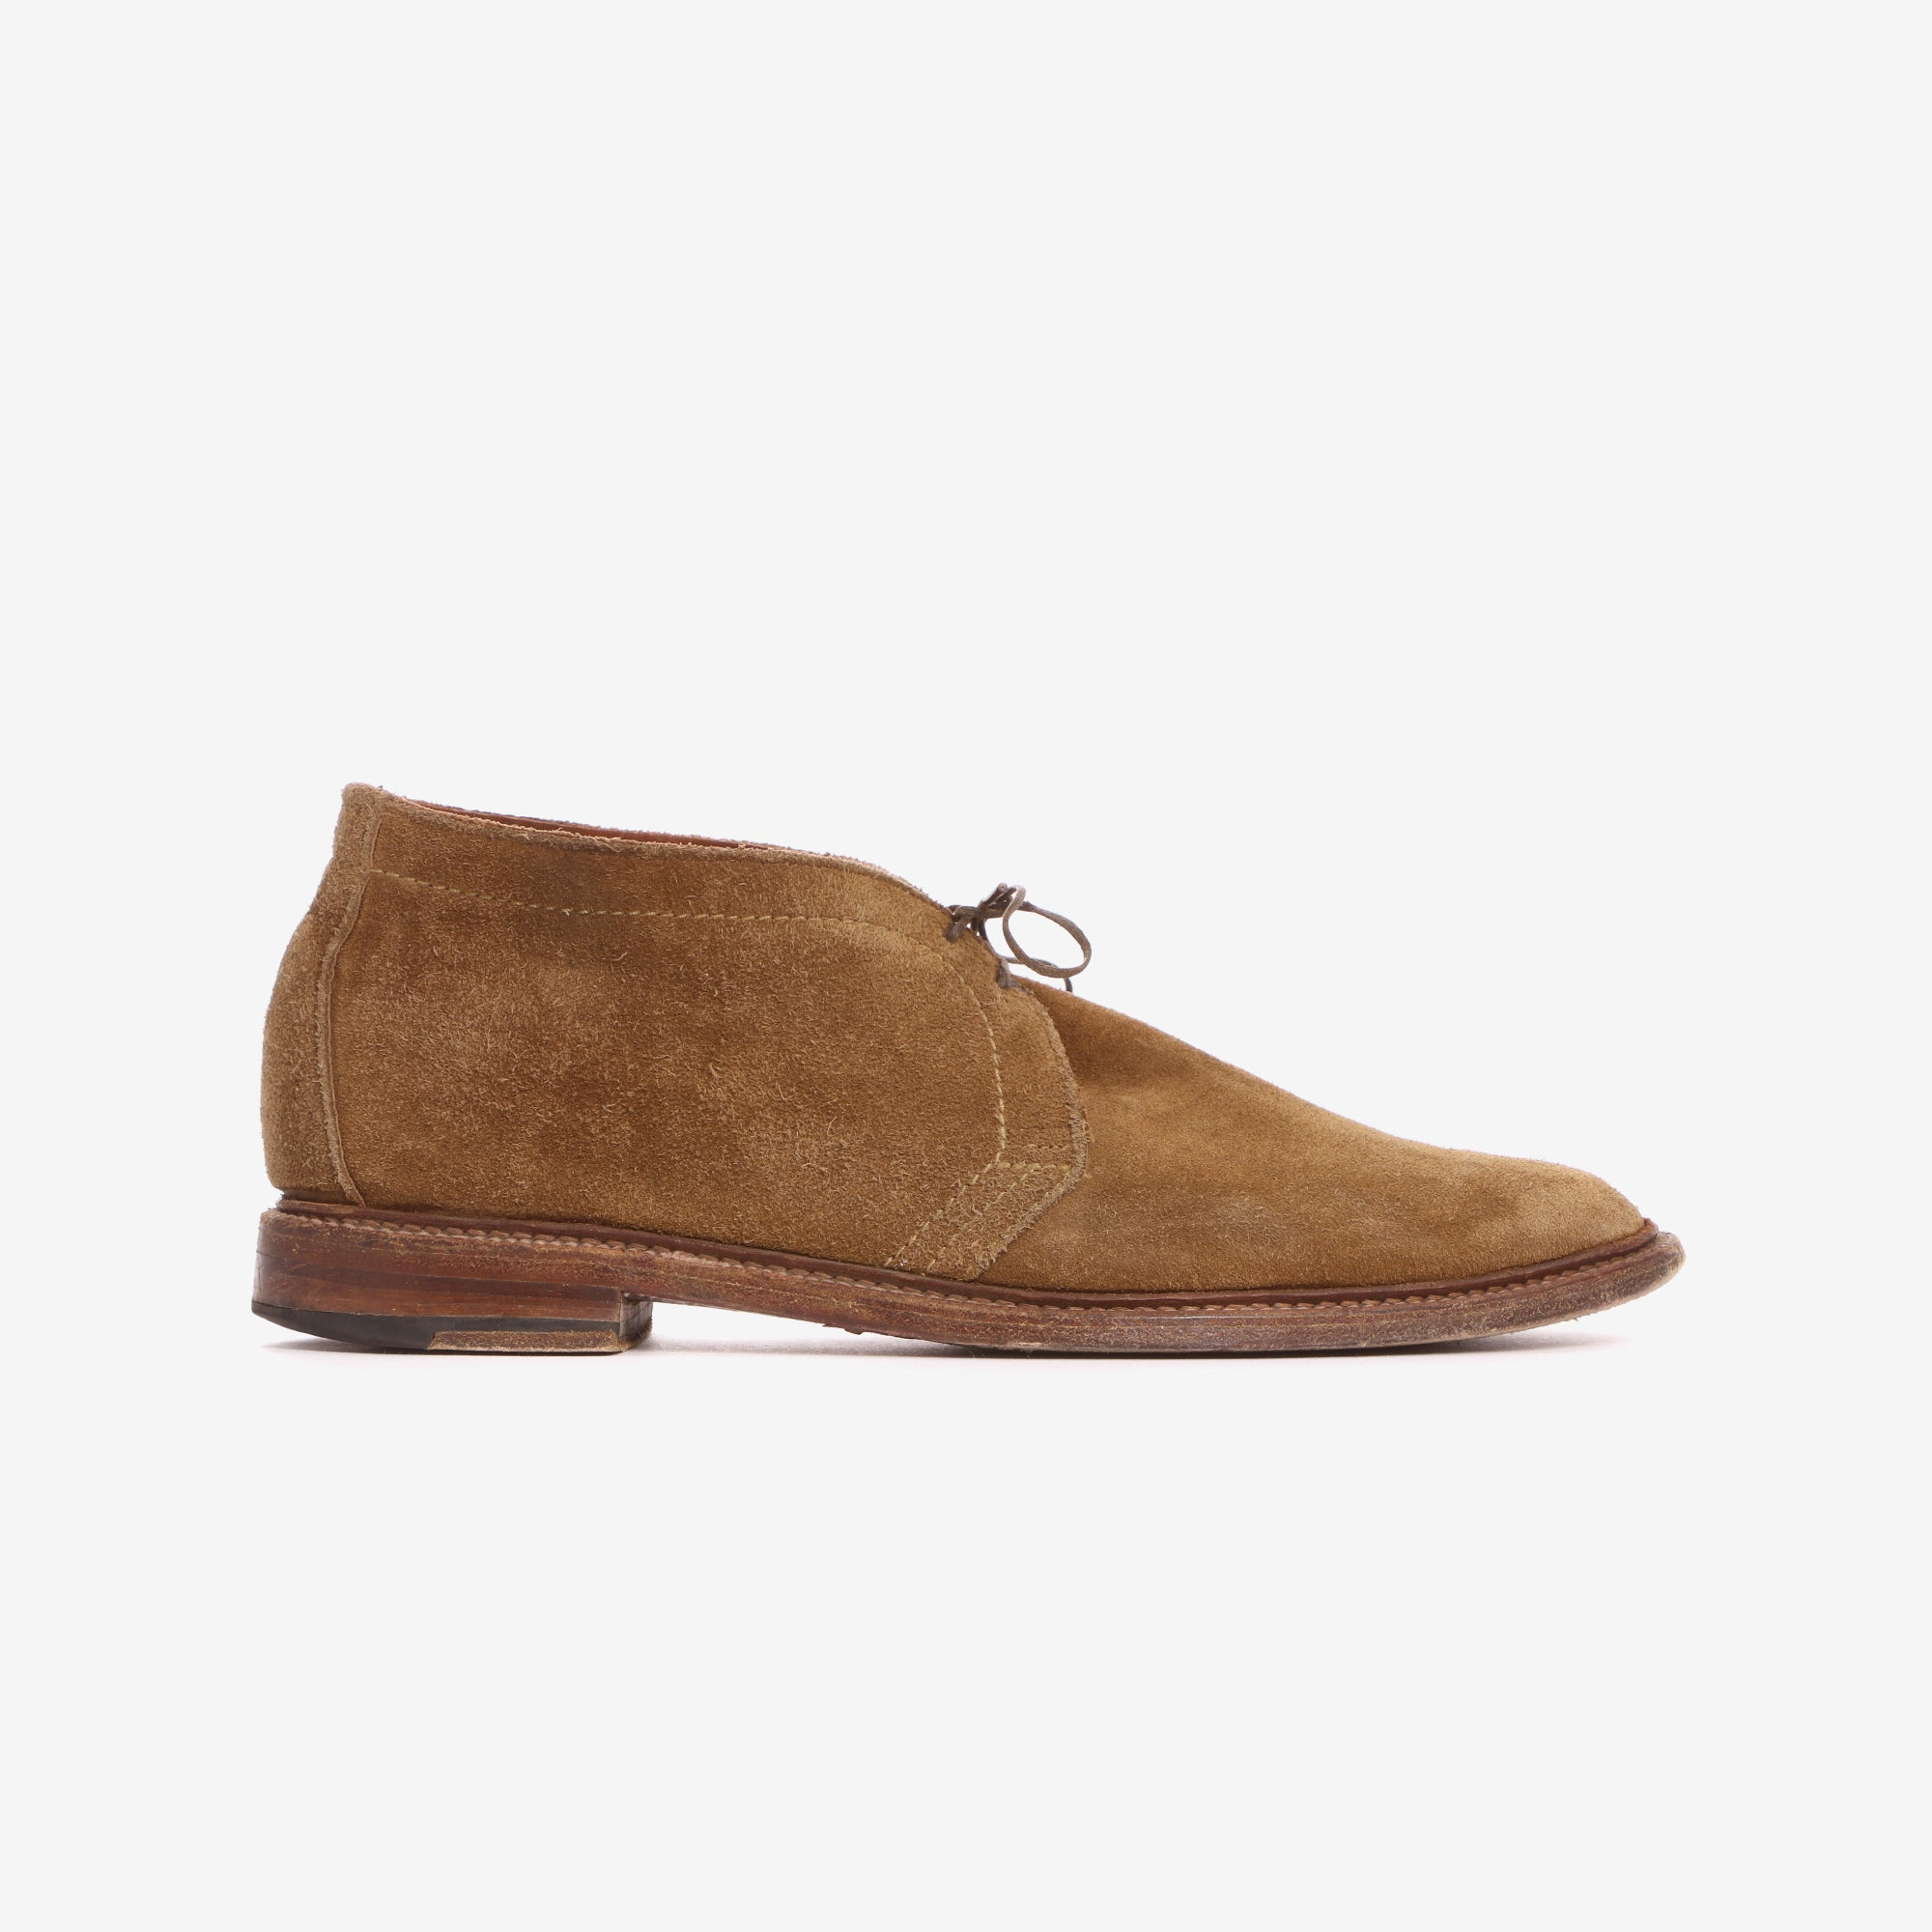 Snuff Suede Chukka Boots